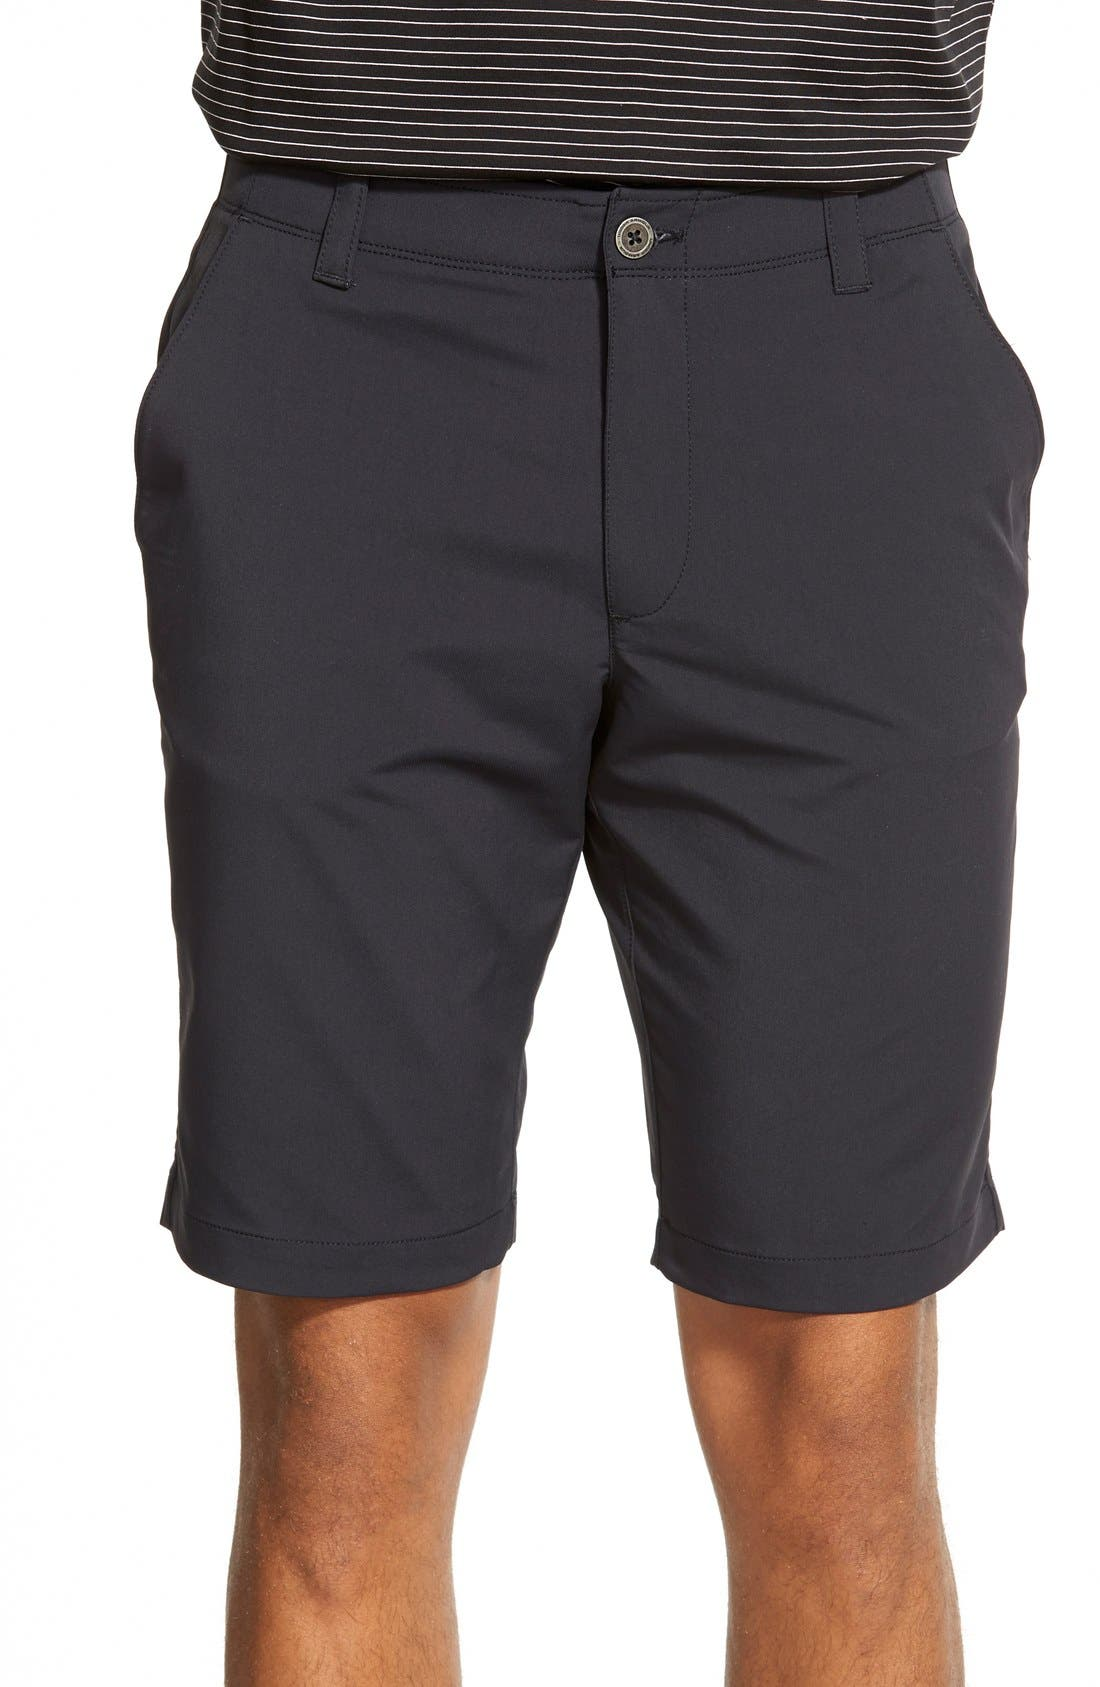 Main Image - Under Armour 'Matchplay' Moisture Wicking Golf Shorts